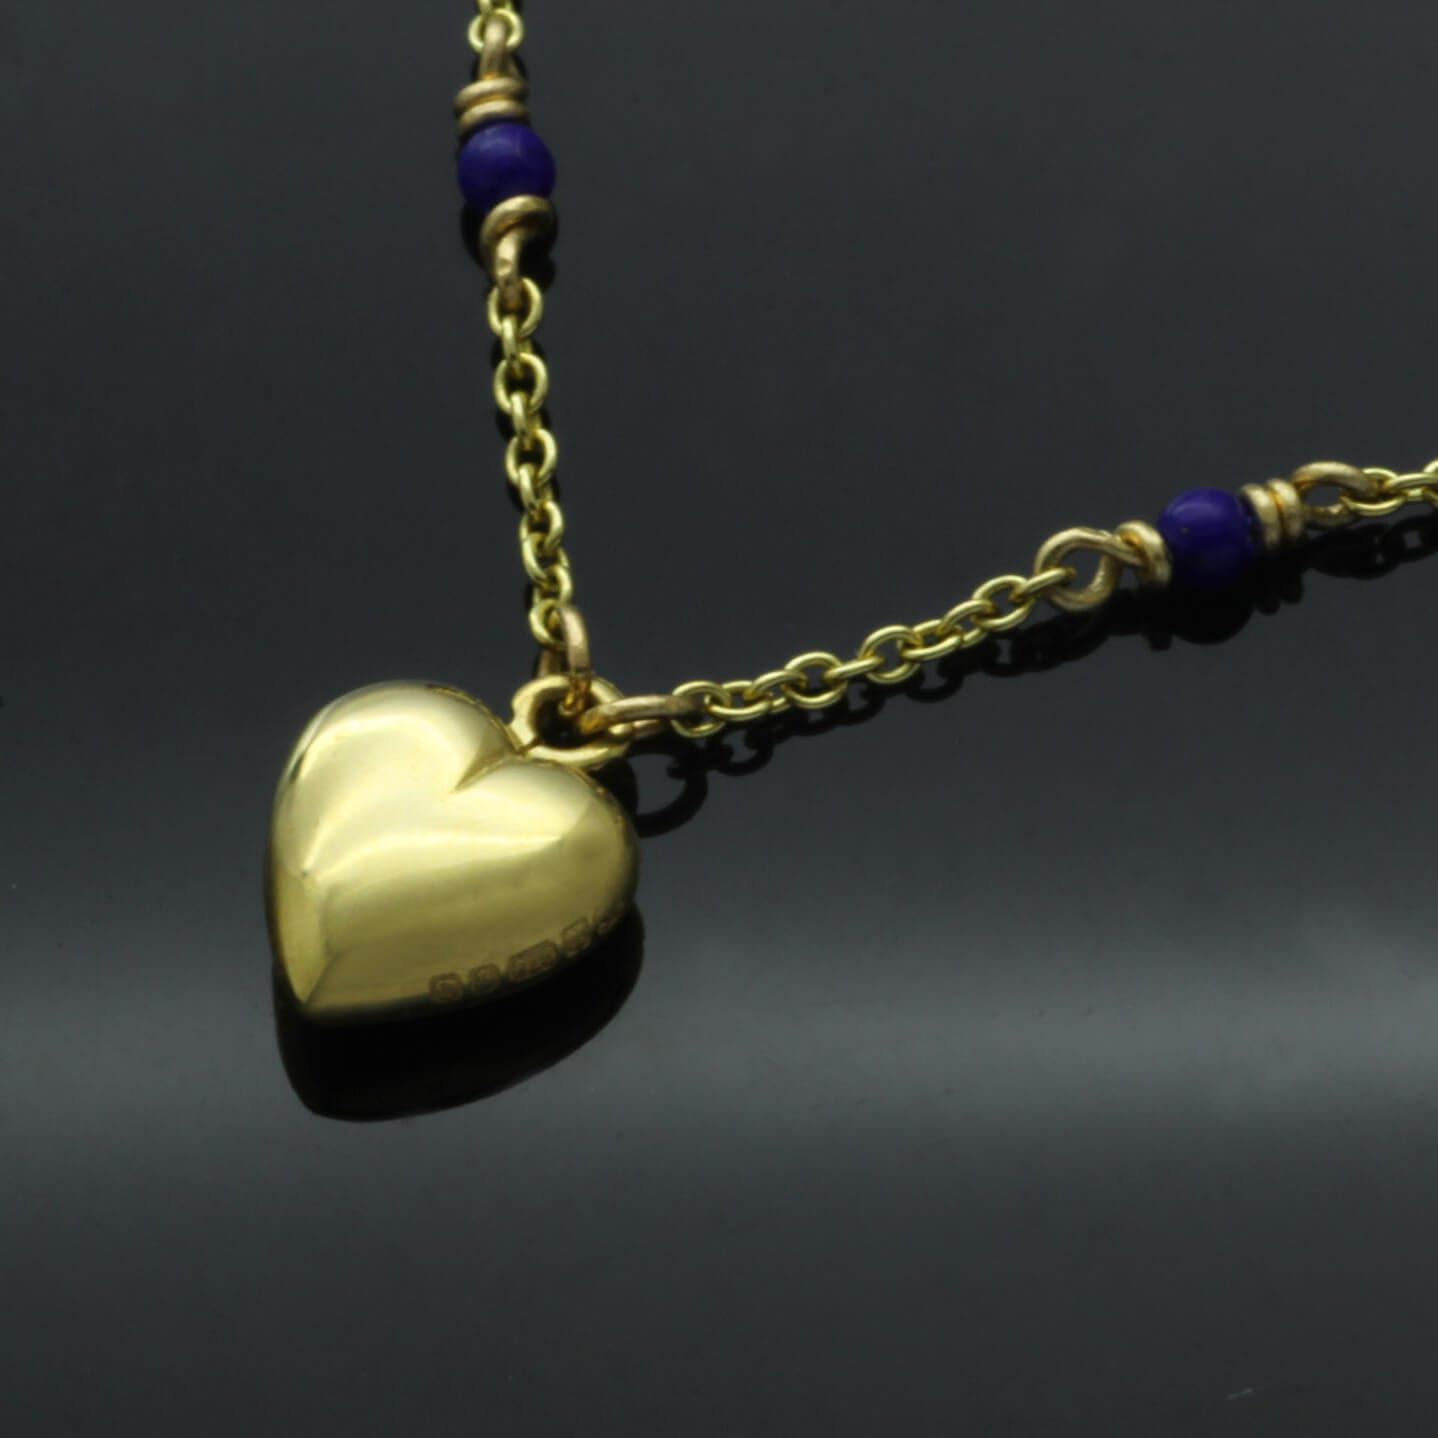 Lapis Lazuli bead 18ct yellow gold necklace with handmade heart charm